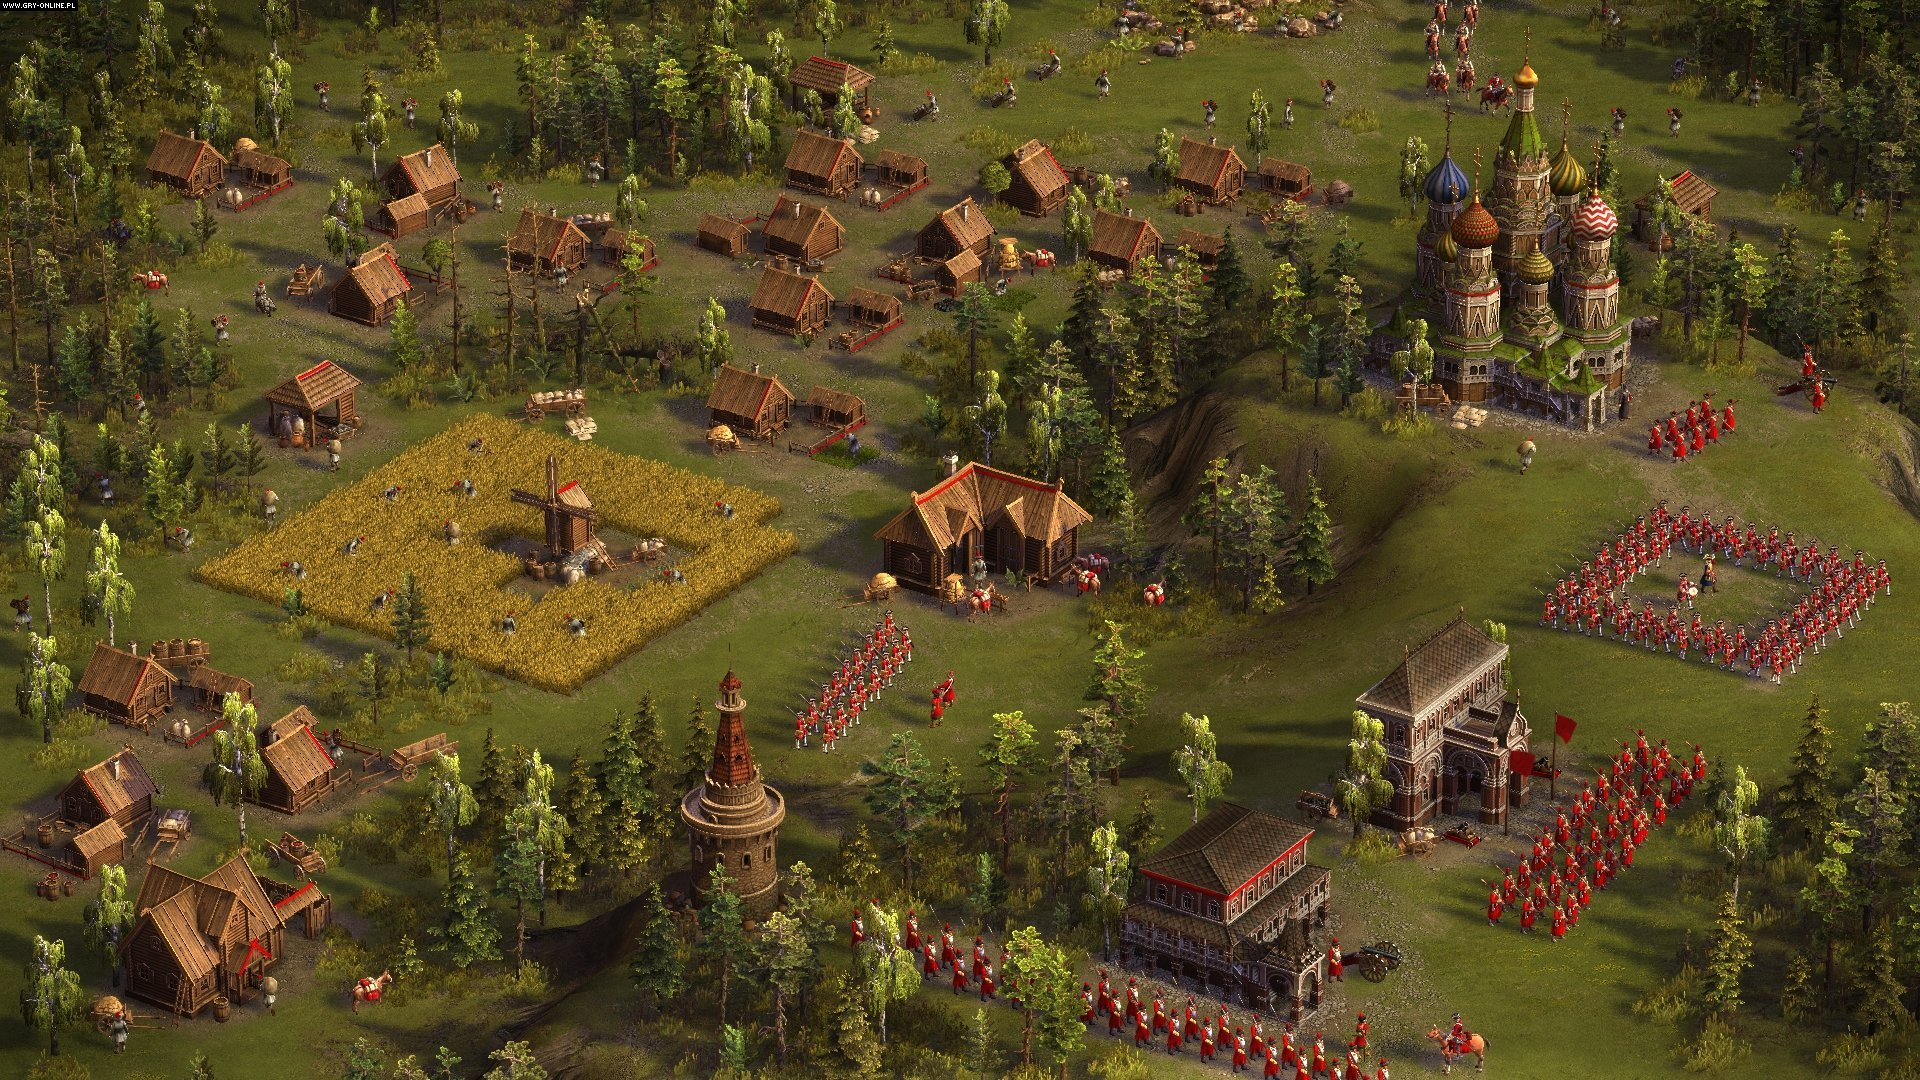 Cossacks 3 PC Games Image 12/20, GSC Game World, GSC World Publishing